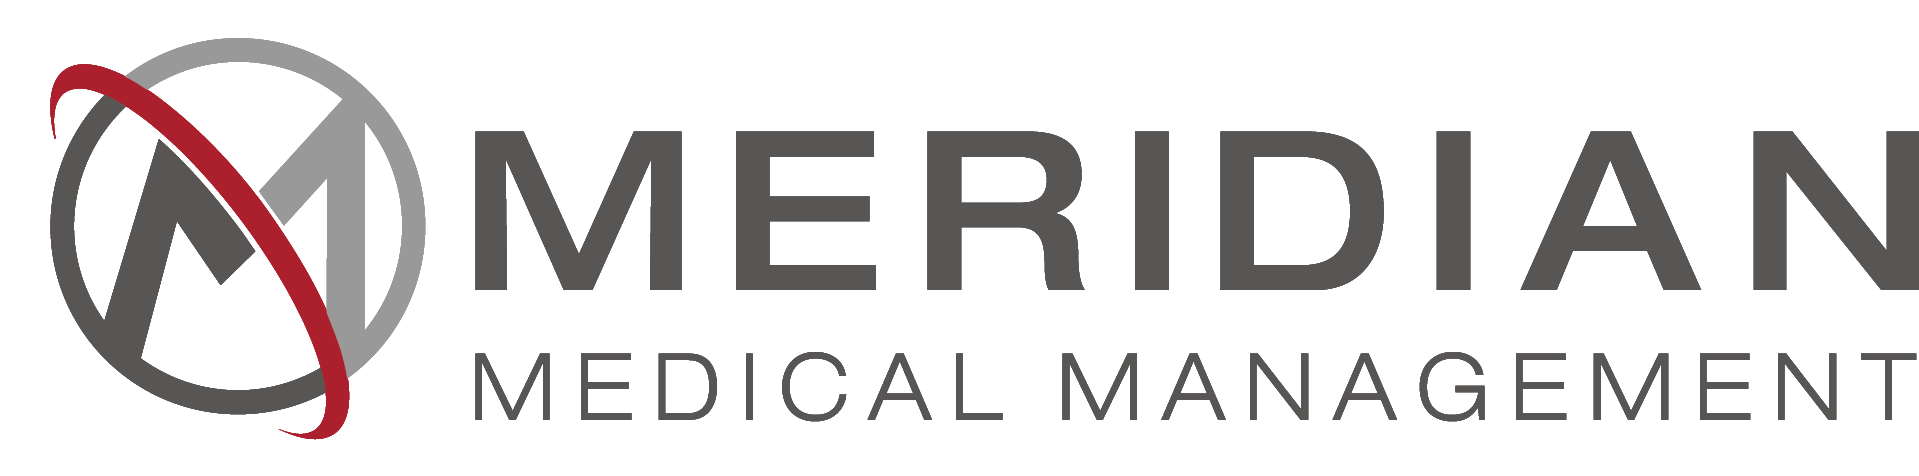 Meridian health plan logo png. Revenue cycle management medical